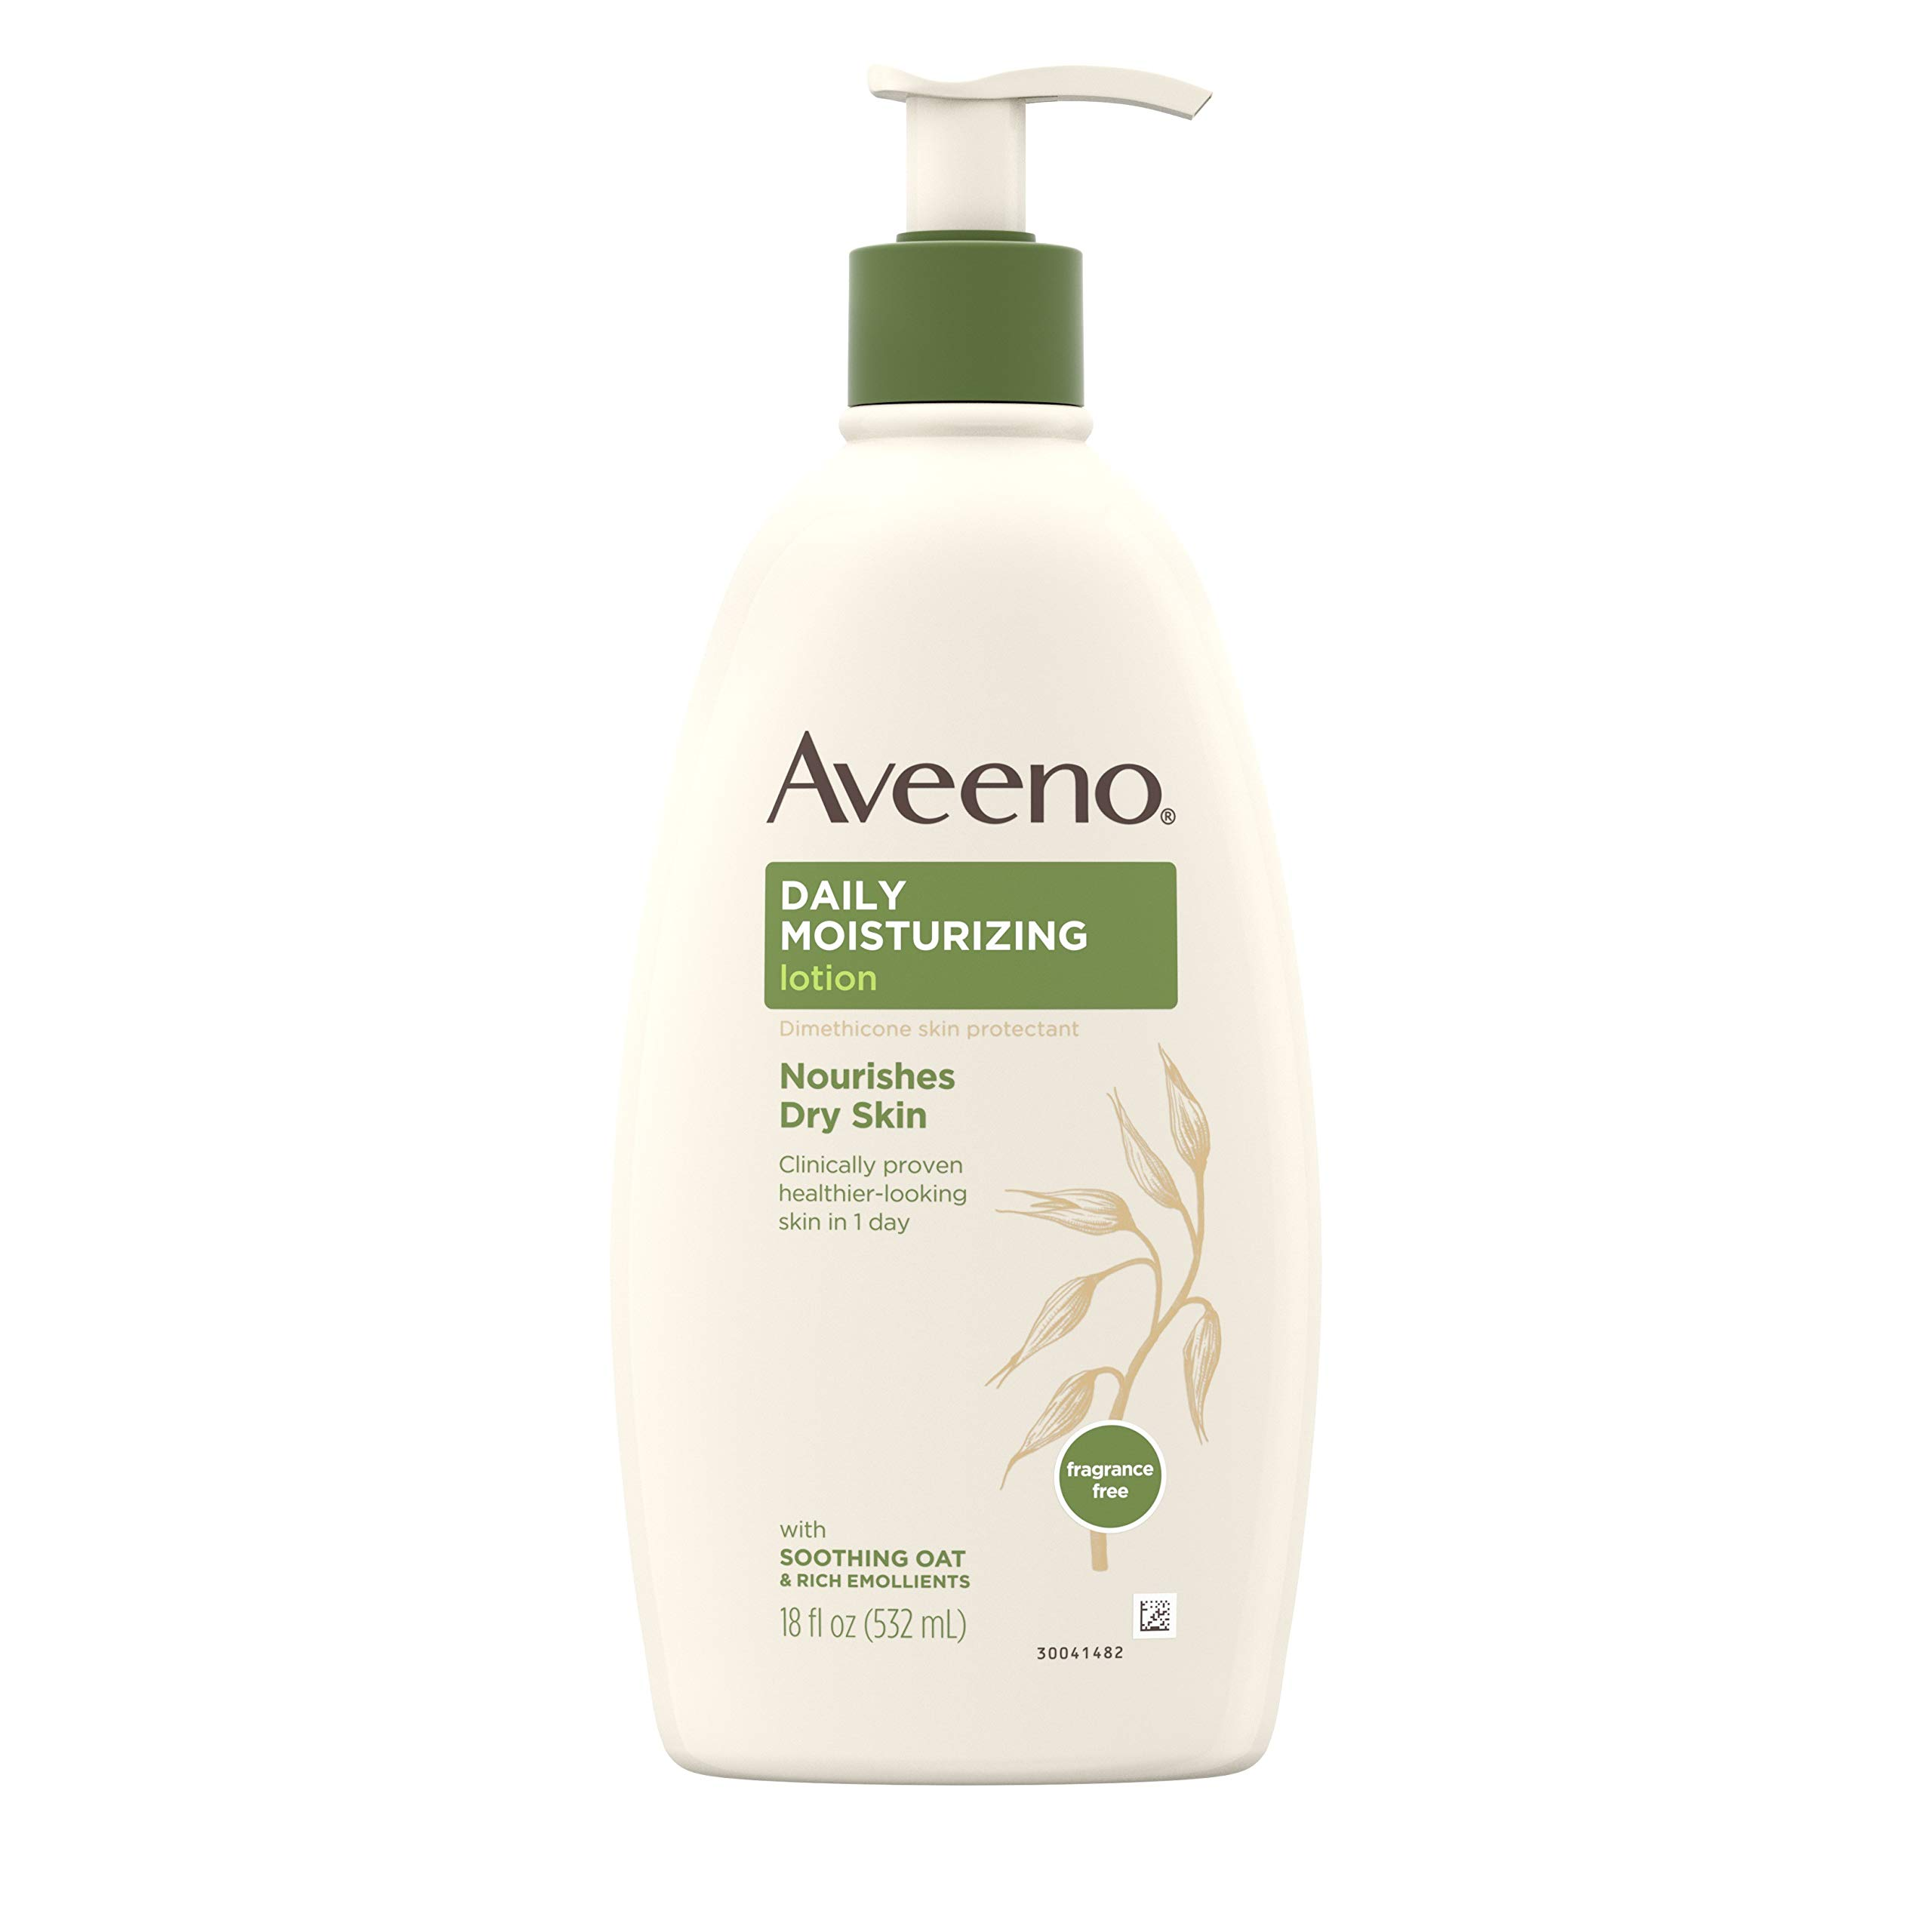 Aveeno Daily Moisturizing Body Lotion with Soothing Oat and Rich Emollients to Nourish Dry Skin, Gentle & Fragrance-Free Lotion is Non-Greasy & Non-Comedogenic, 18 Fl Oz